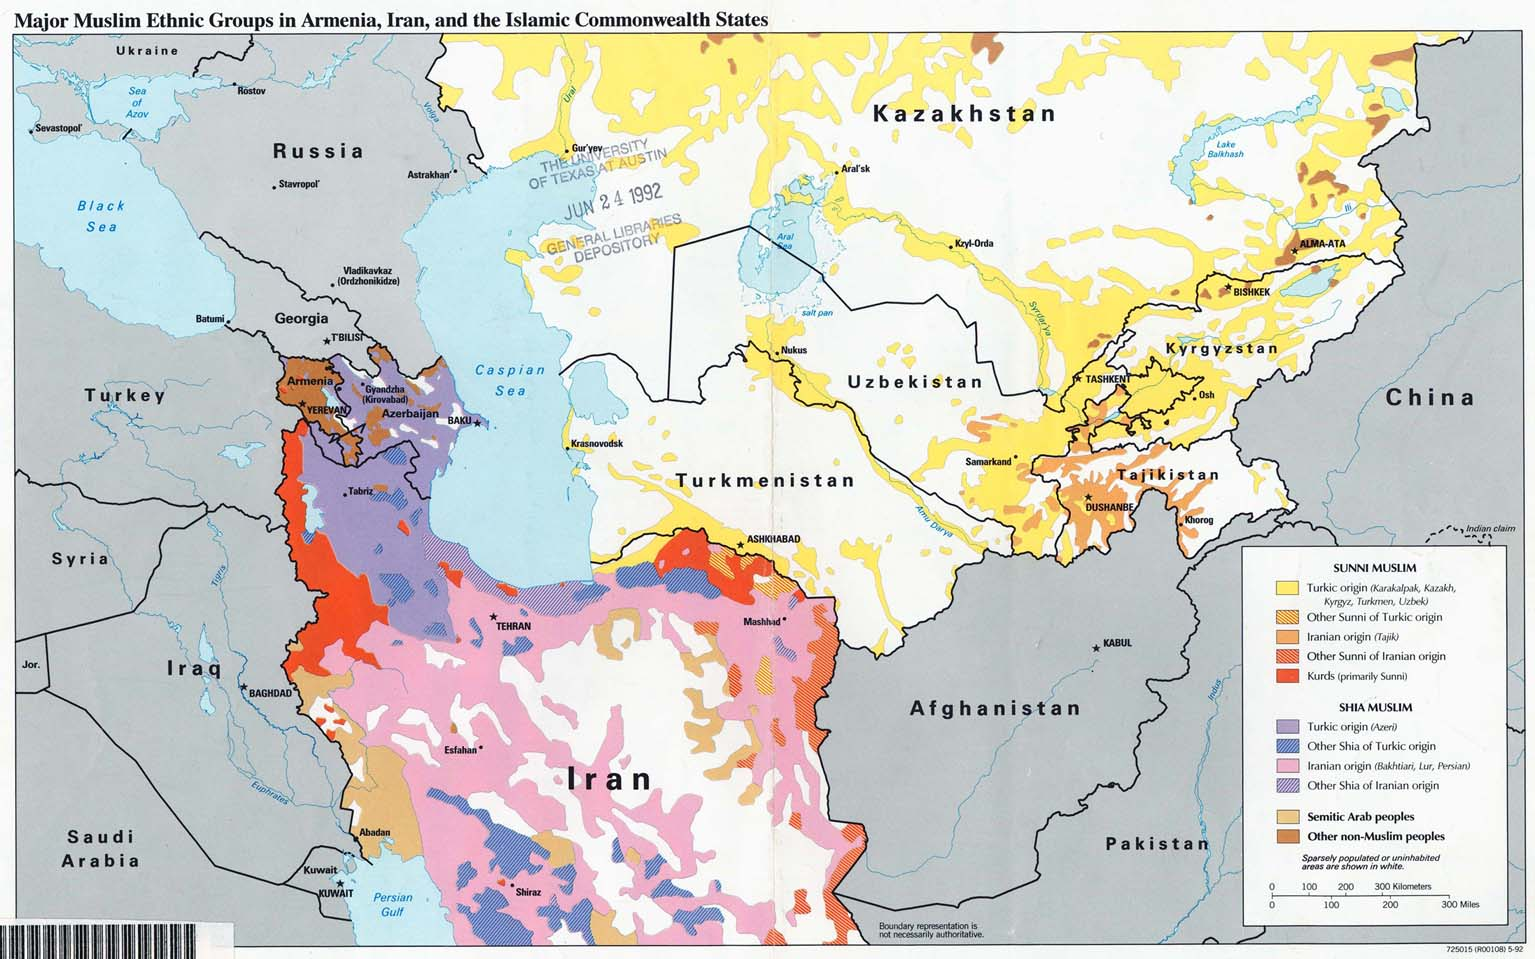 Major Muslim Ethnic Groups In Armenia Iran And The Islamic Commonwealth States